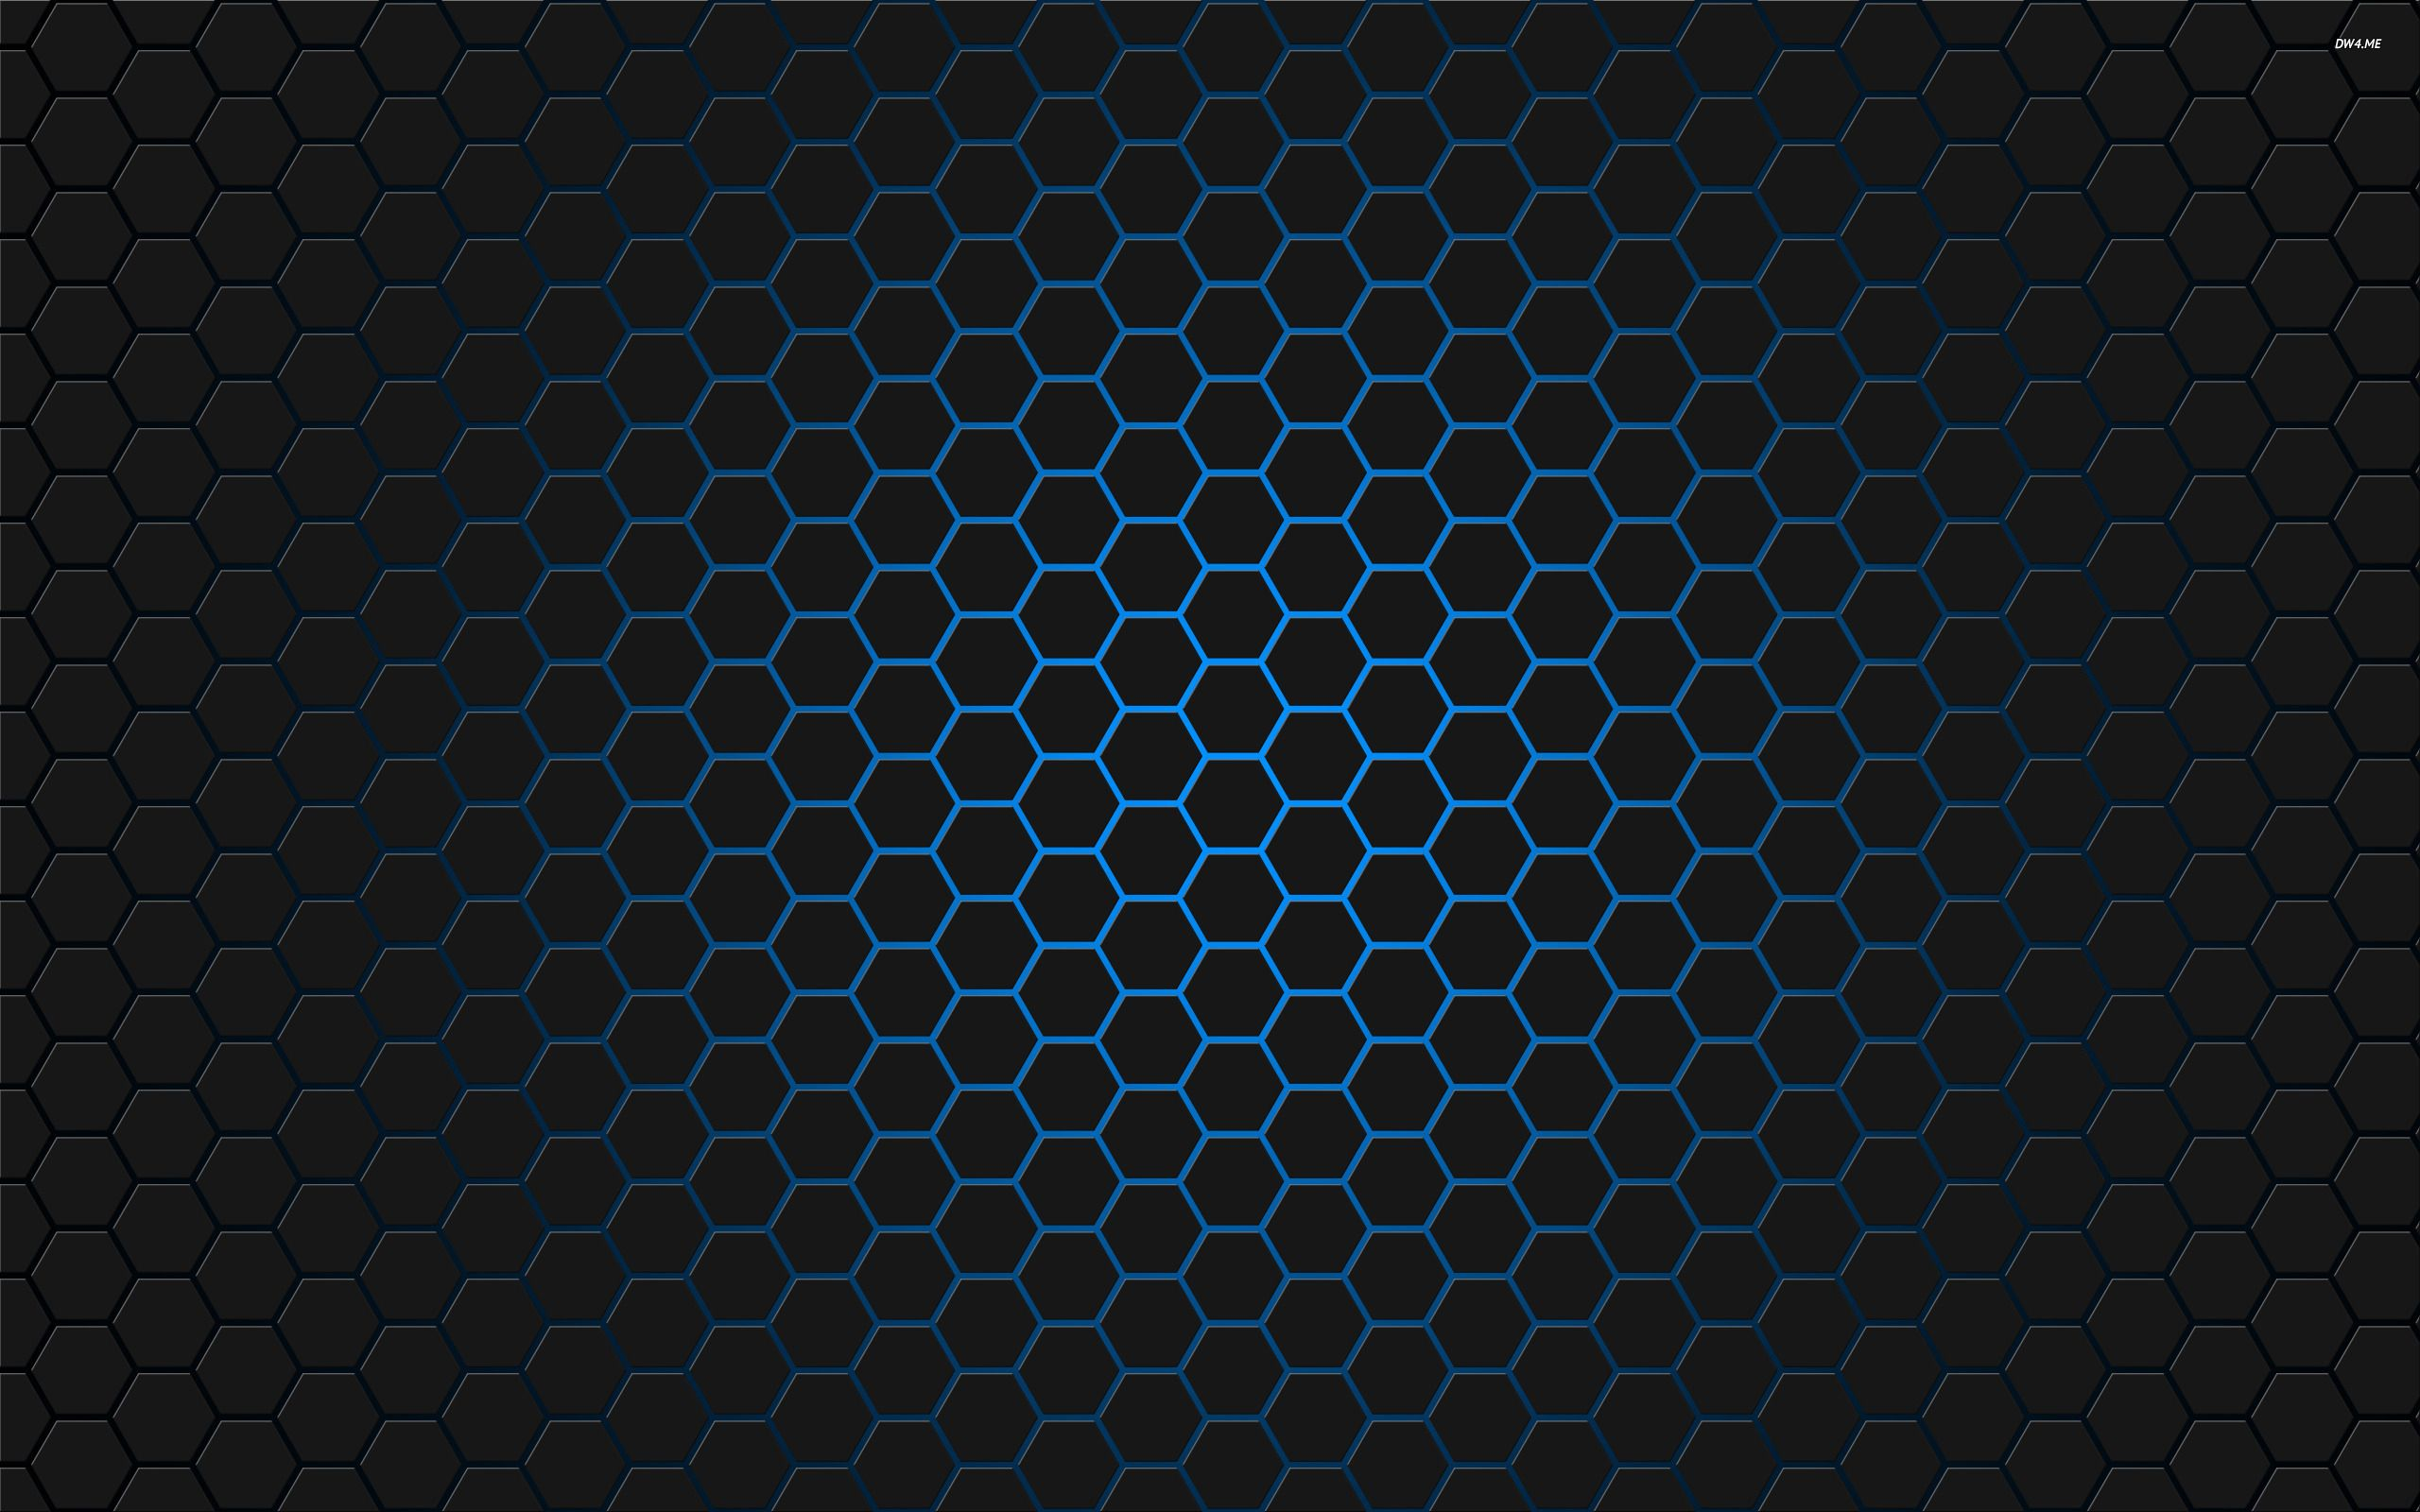 Hexagon Background / Download this free vector about hexagons with colored borders, and discover more than 8 million professional graphic resources on freepik.